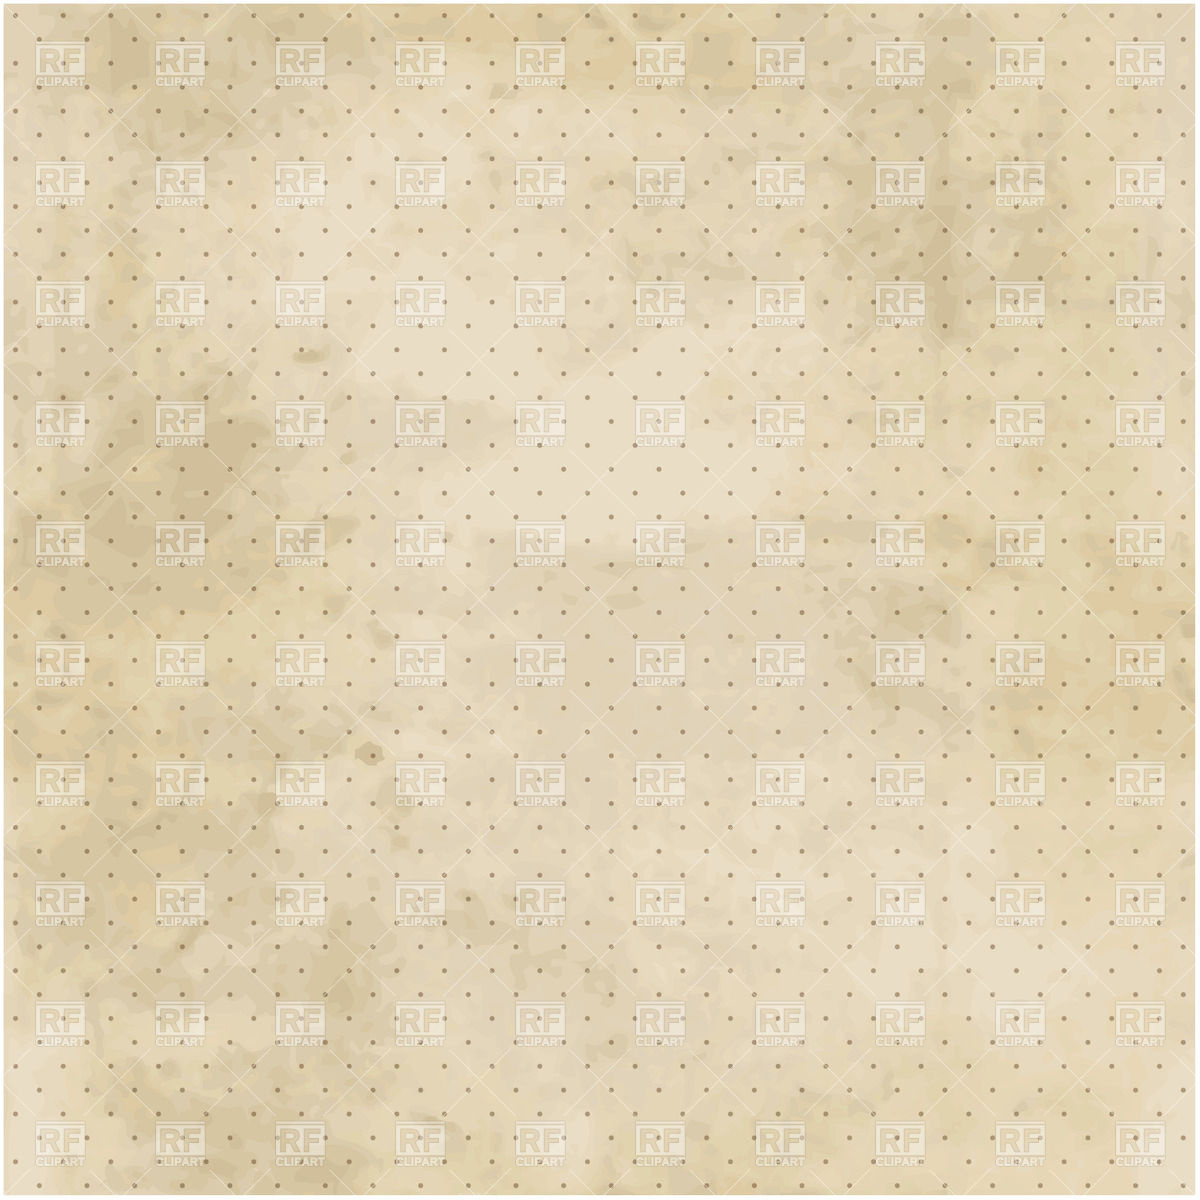 vector free download texture - photo #24